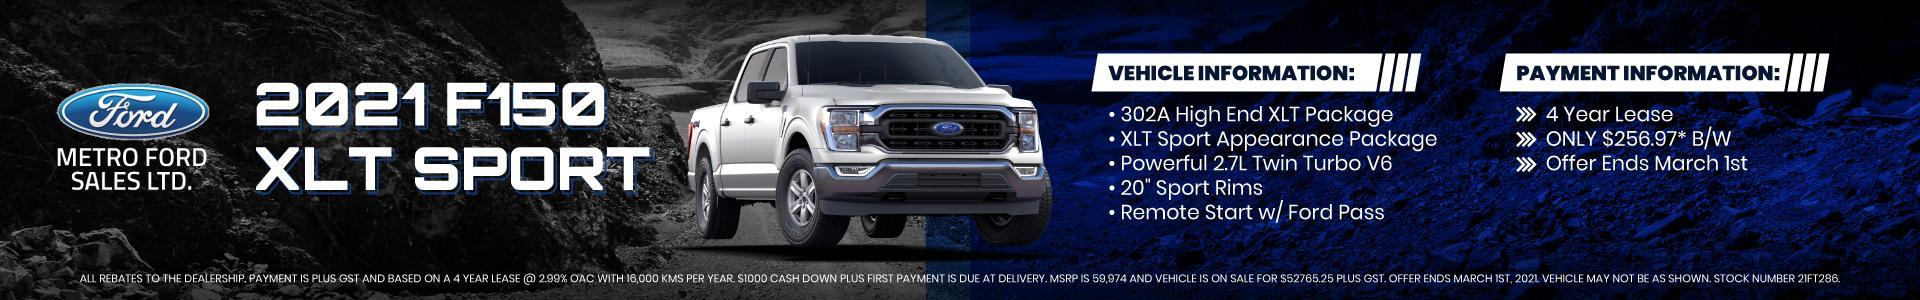 2021 F-150 XLT SPORT Lease offer from Metro Ford Dealership Calgary